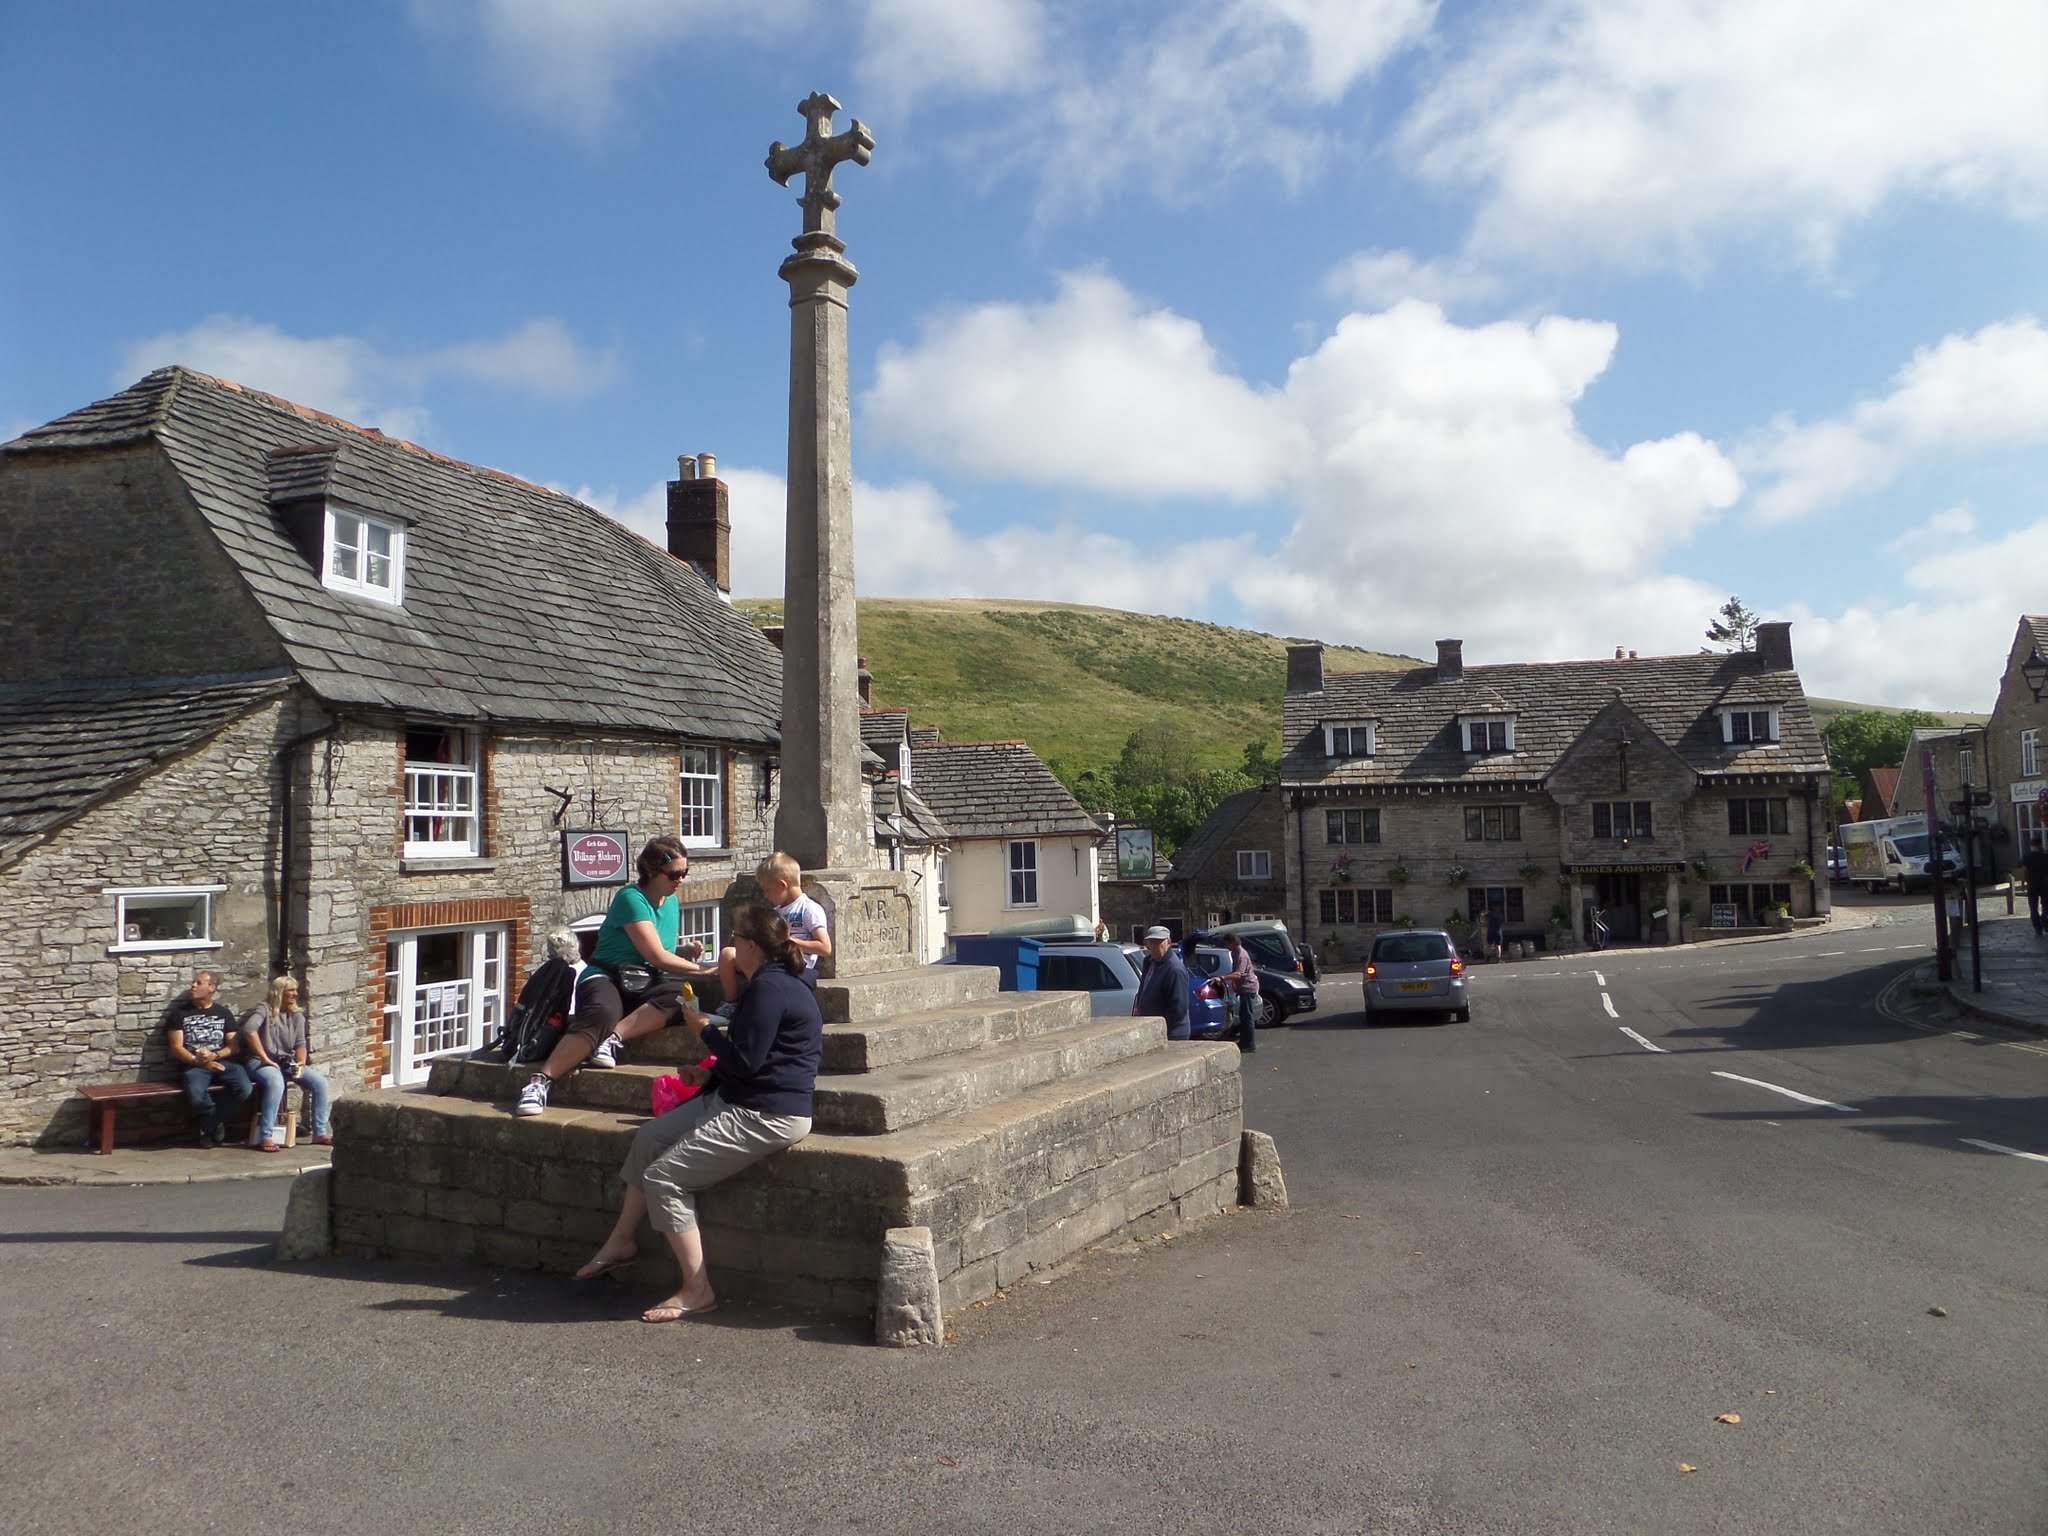 Market place, Corfe Castle village